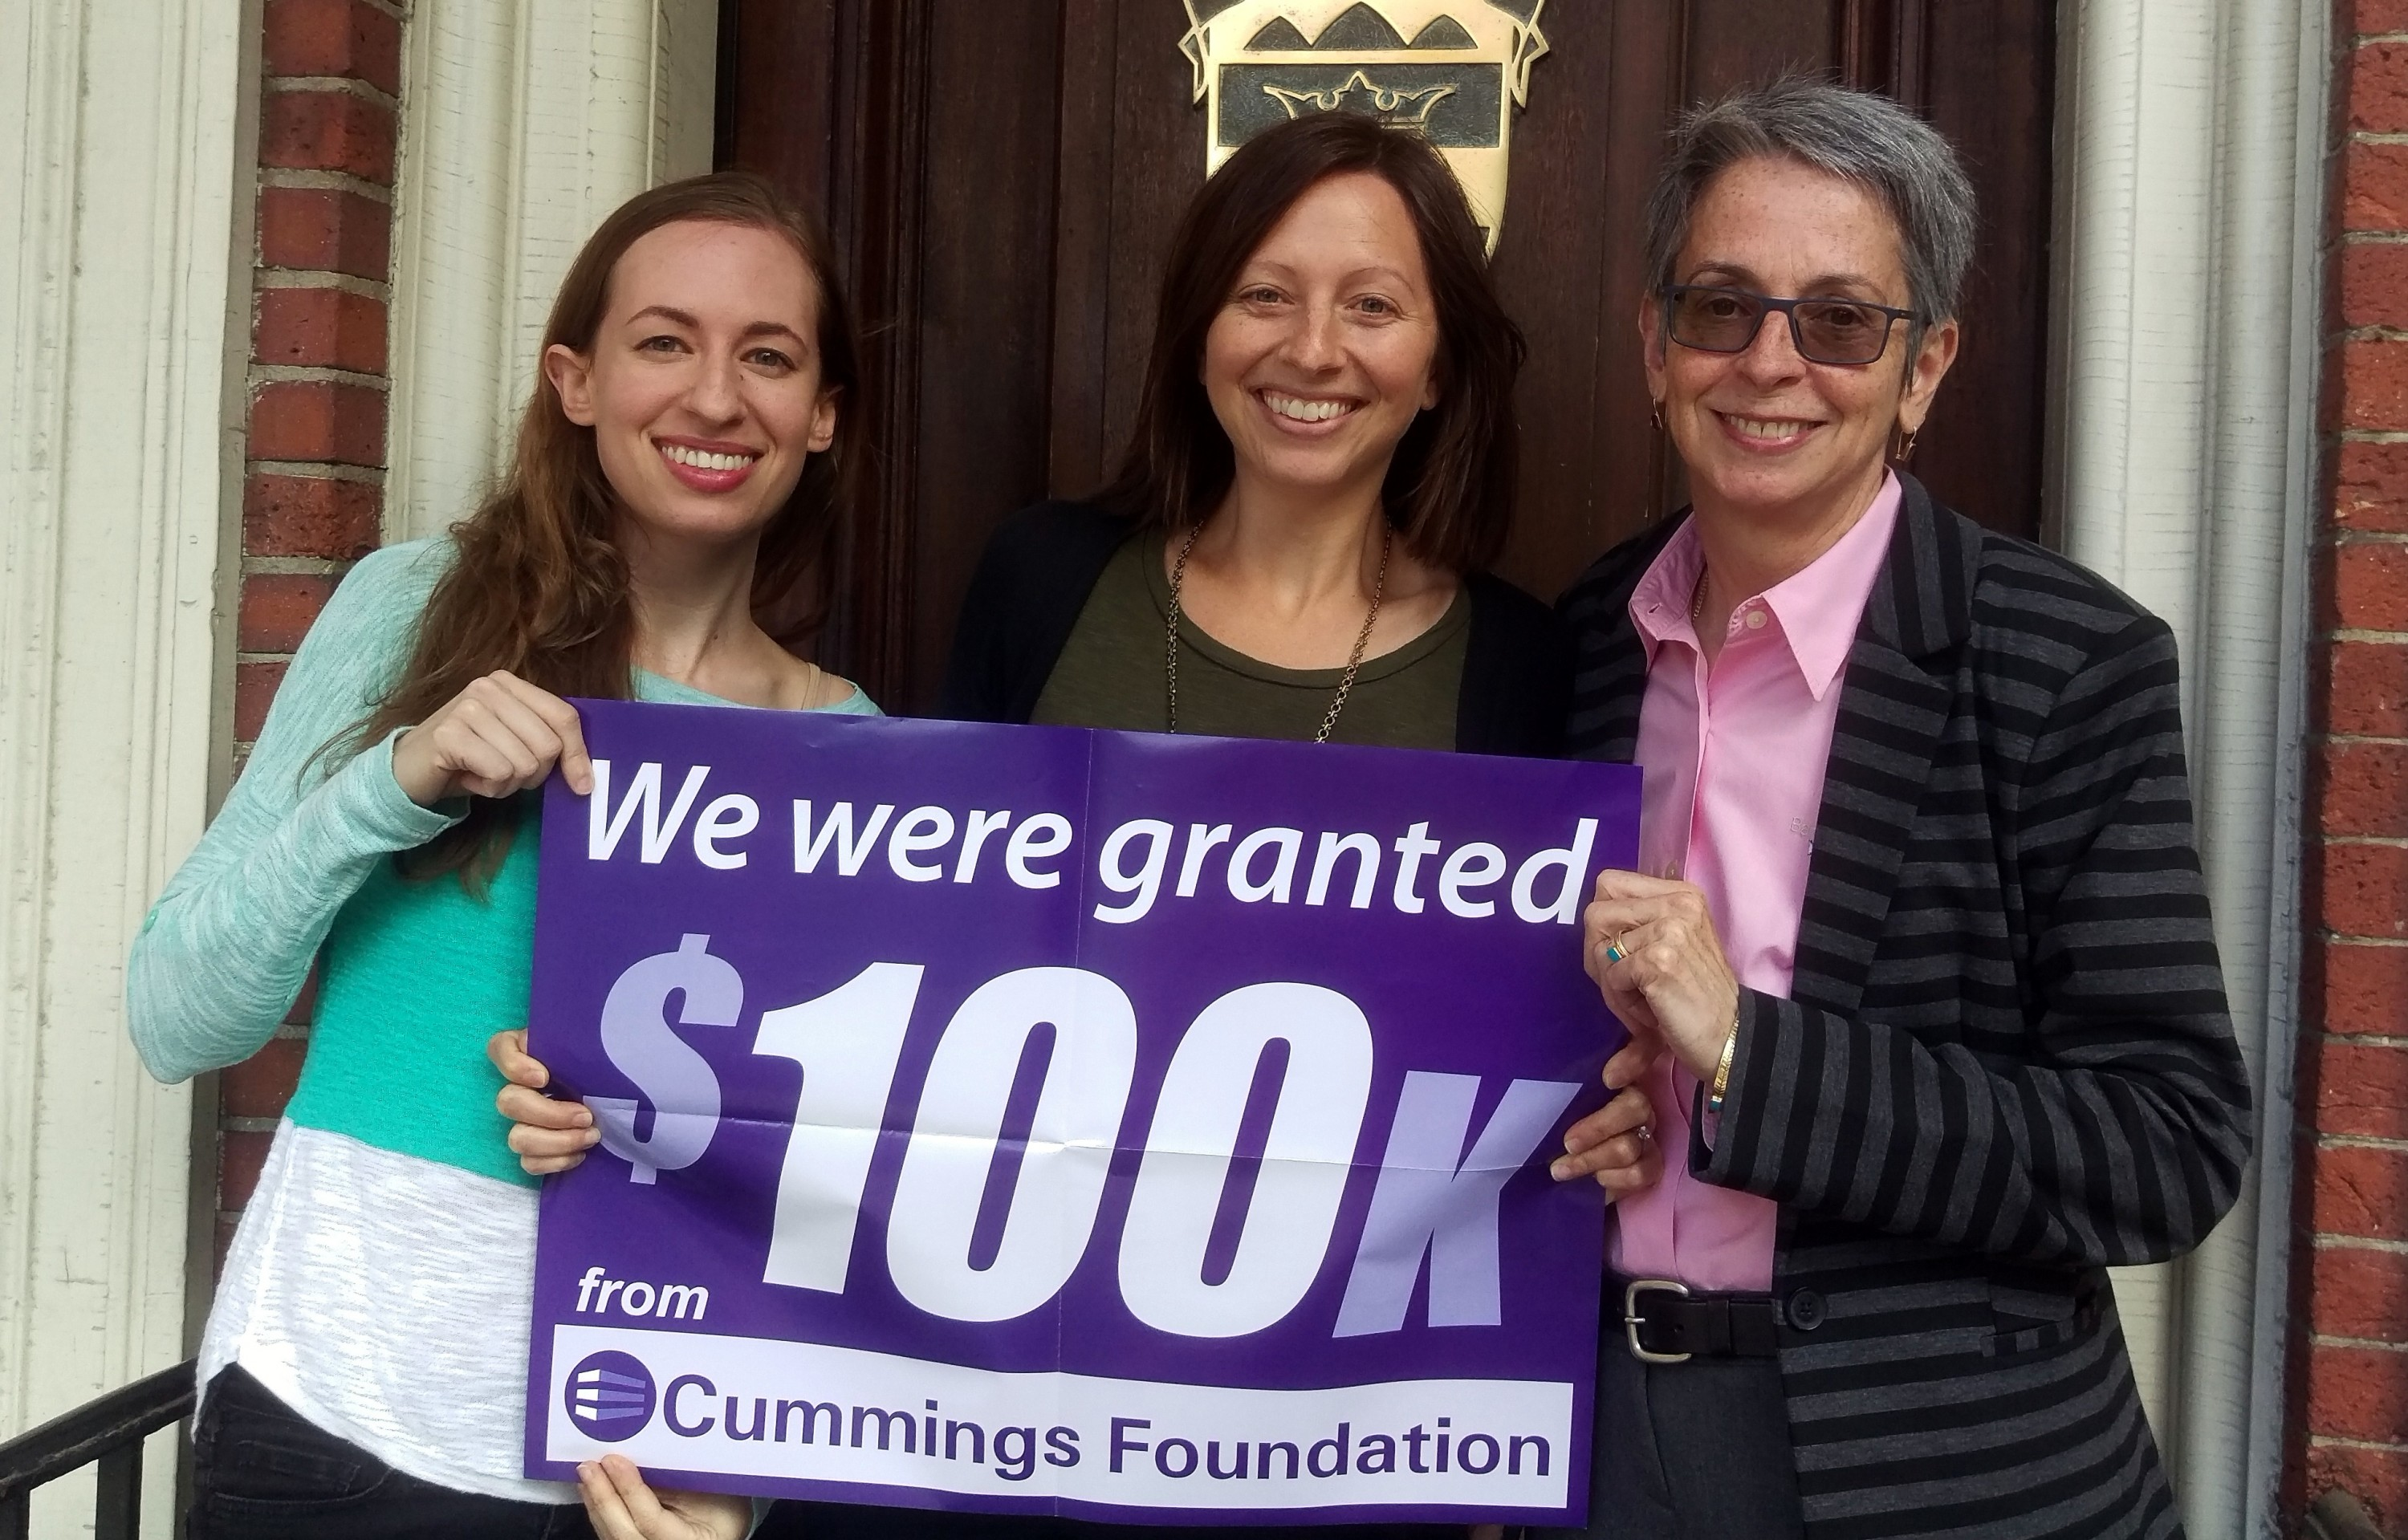 Clearinghouse staff hold the poster announcing their grant from Cummings Foundation. L to R: Communications Coordinator Hilary Vaught, Access to Justice Fellows Program Director Mia Friedman, and Executive Director Maribeth Perry.